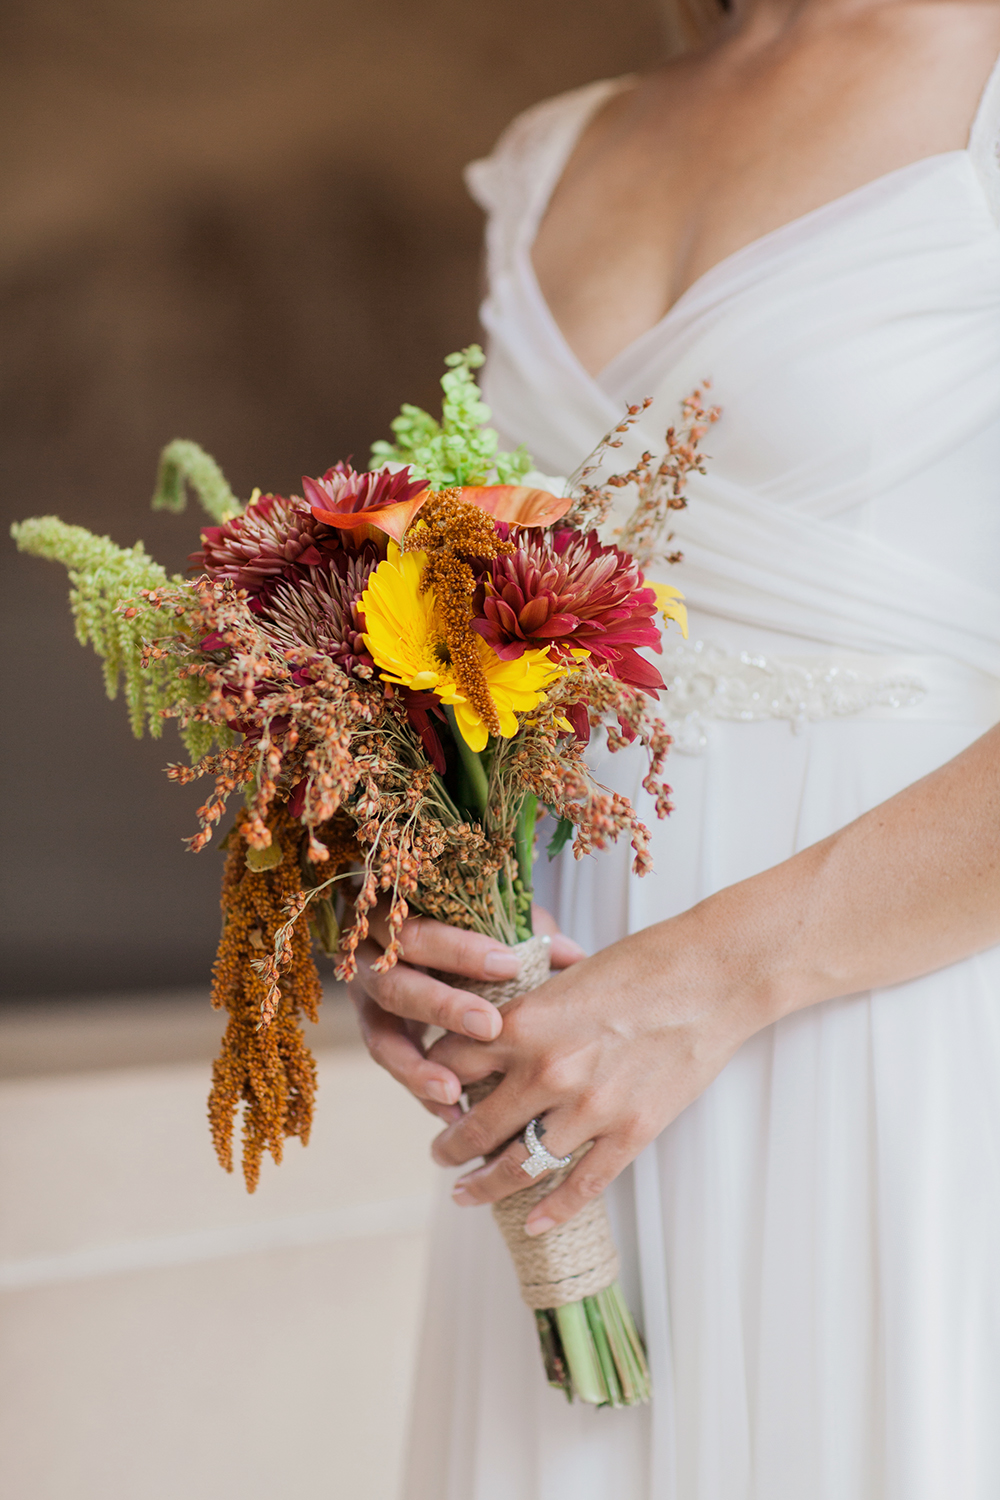 Bride DYI floral bouquet from a wedding in San Francisco City Hall.